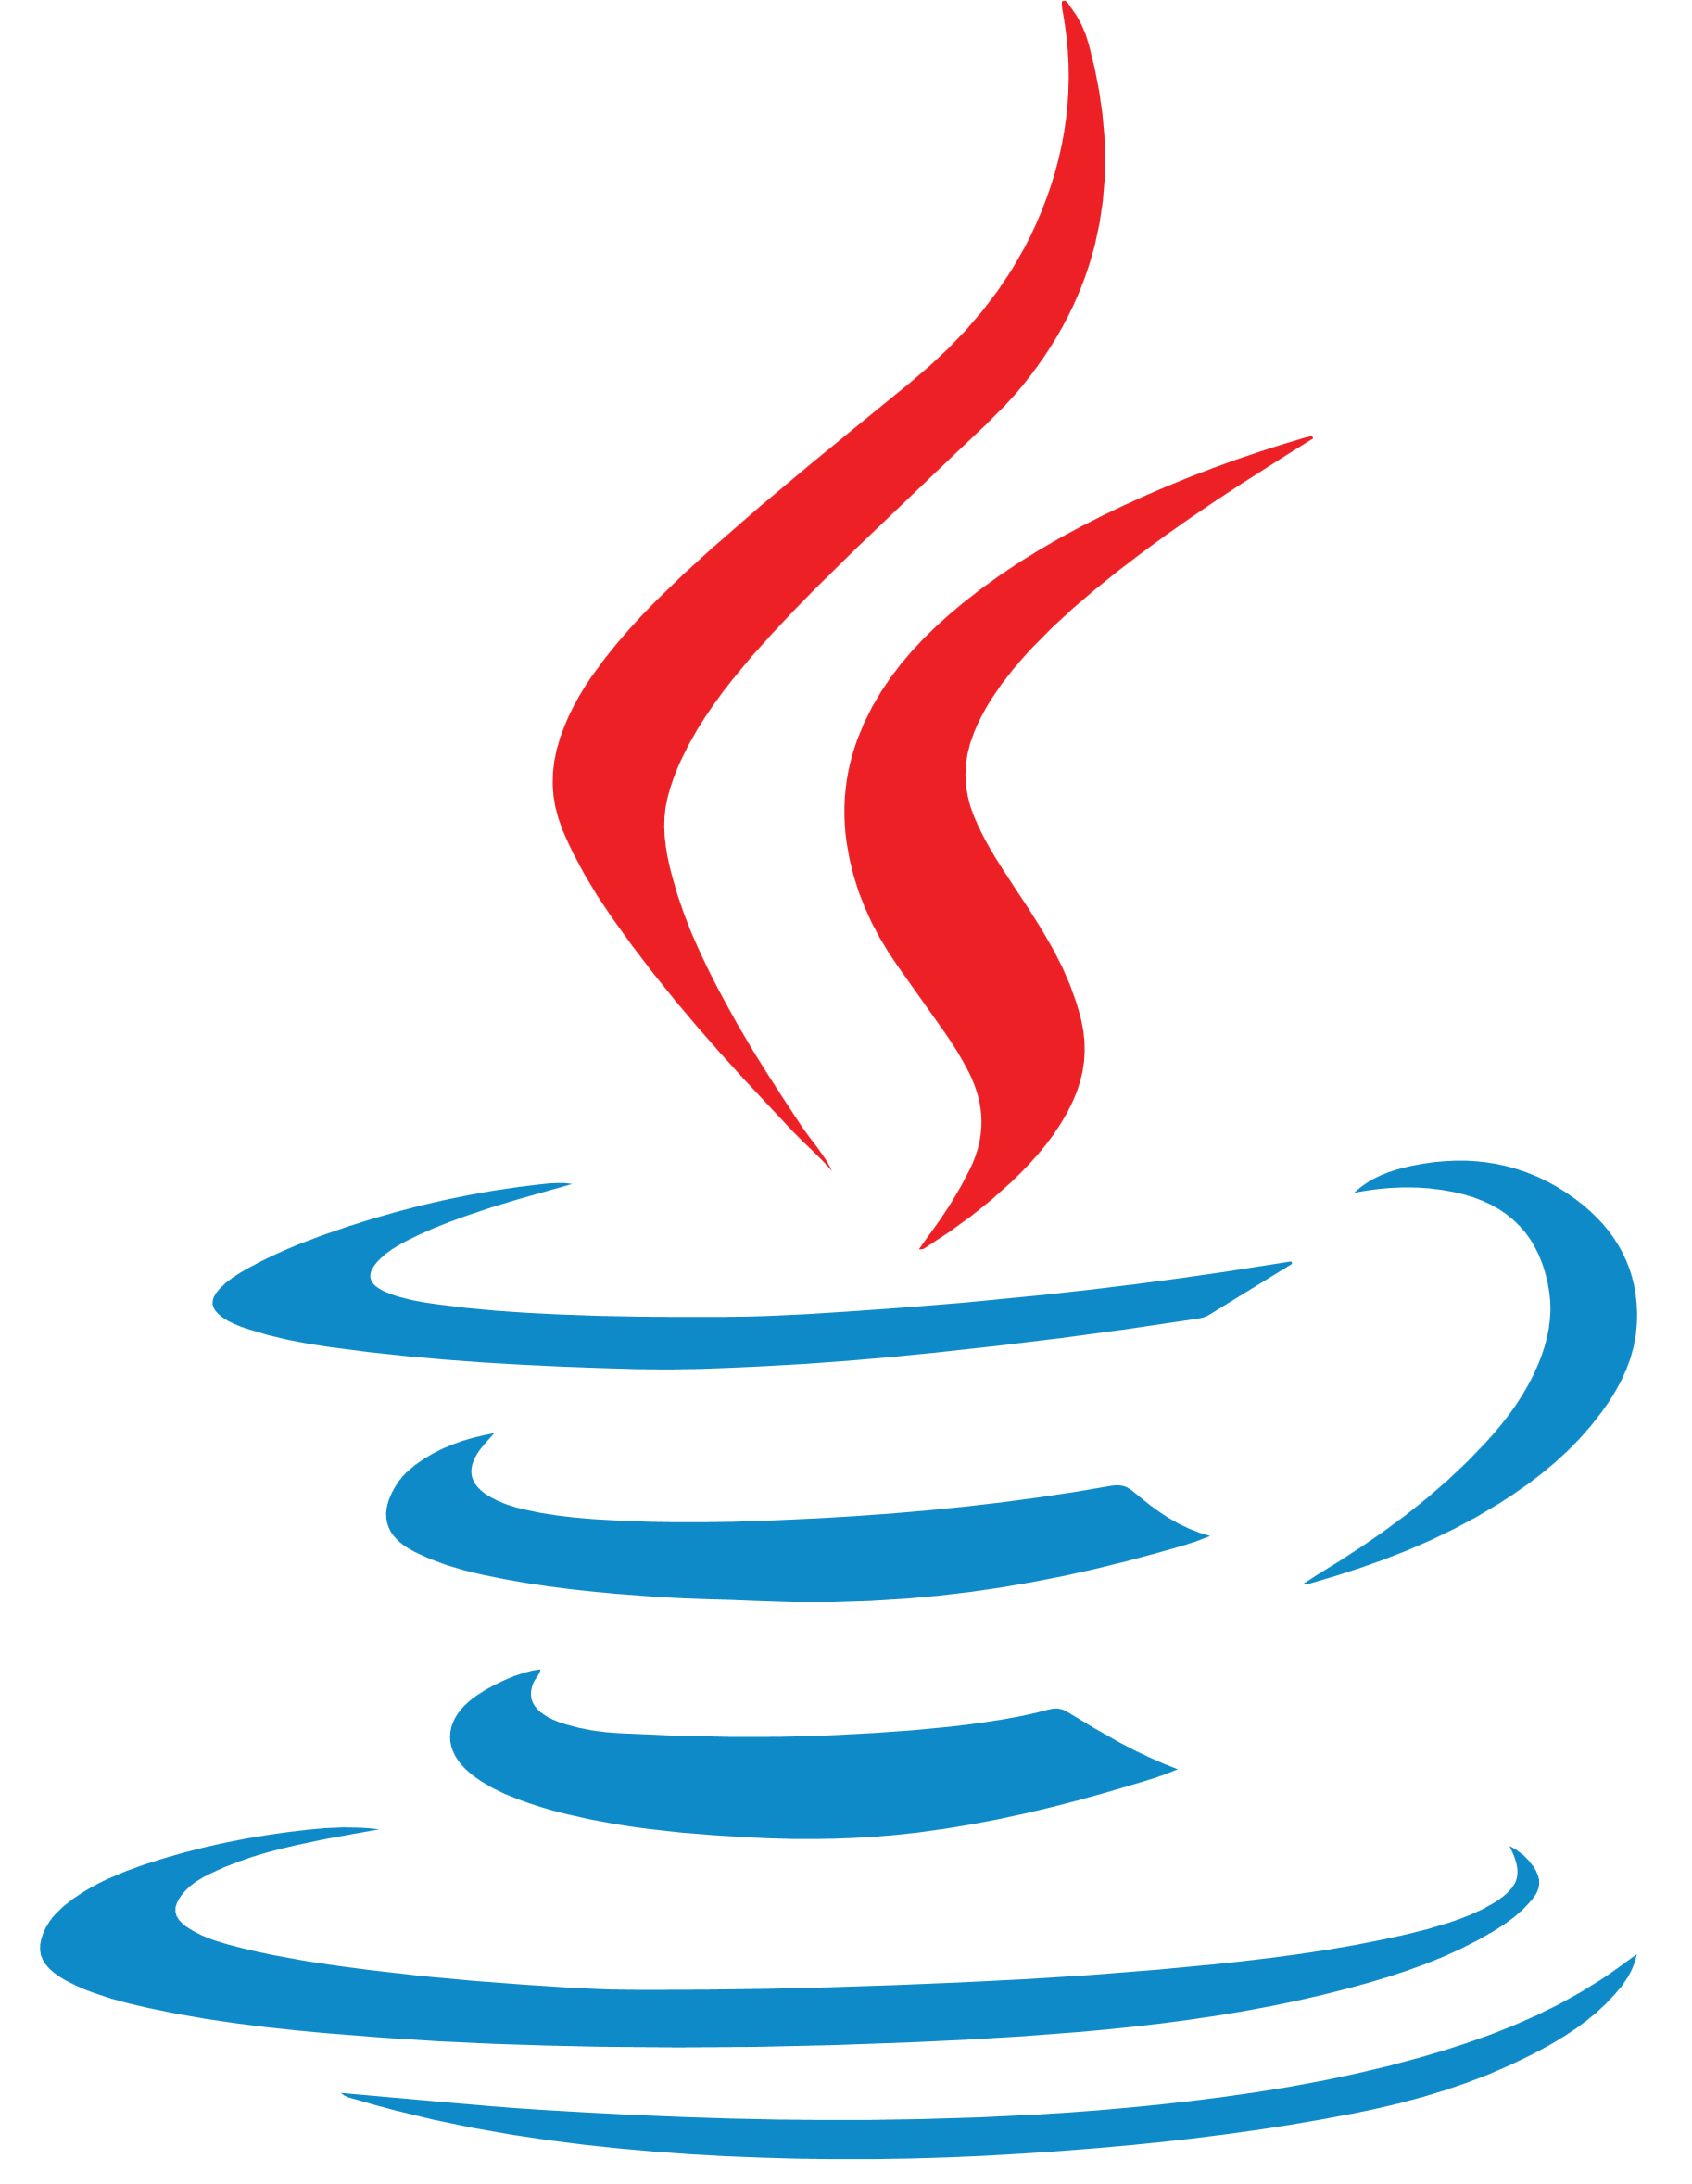 Java application development company soft suave